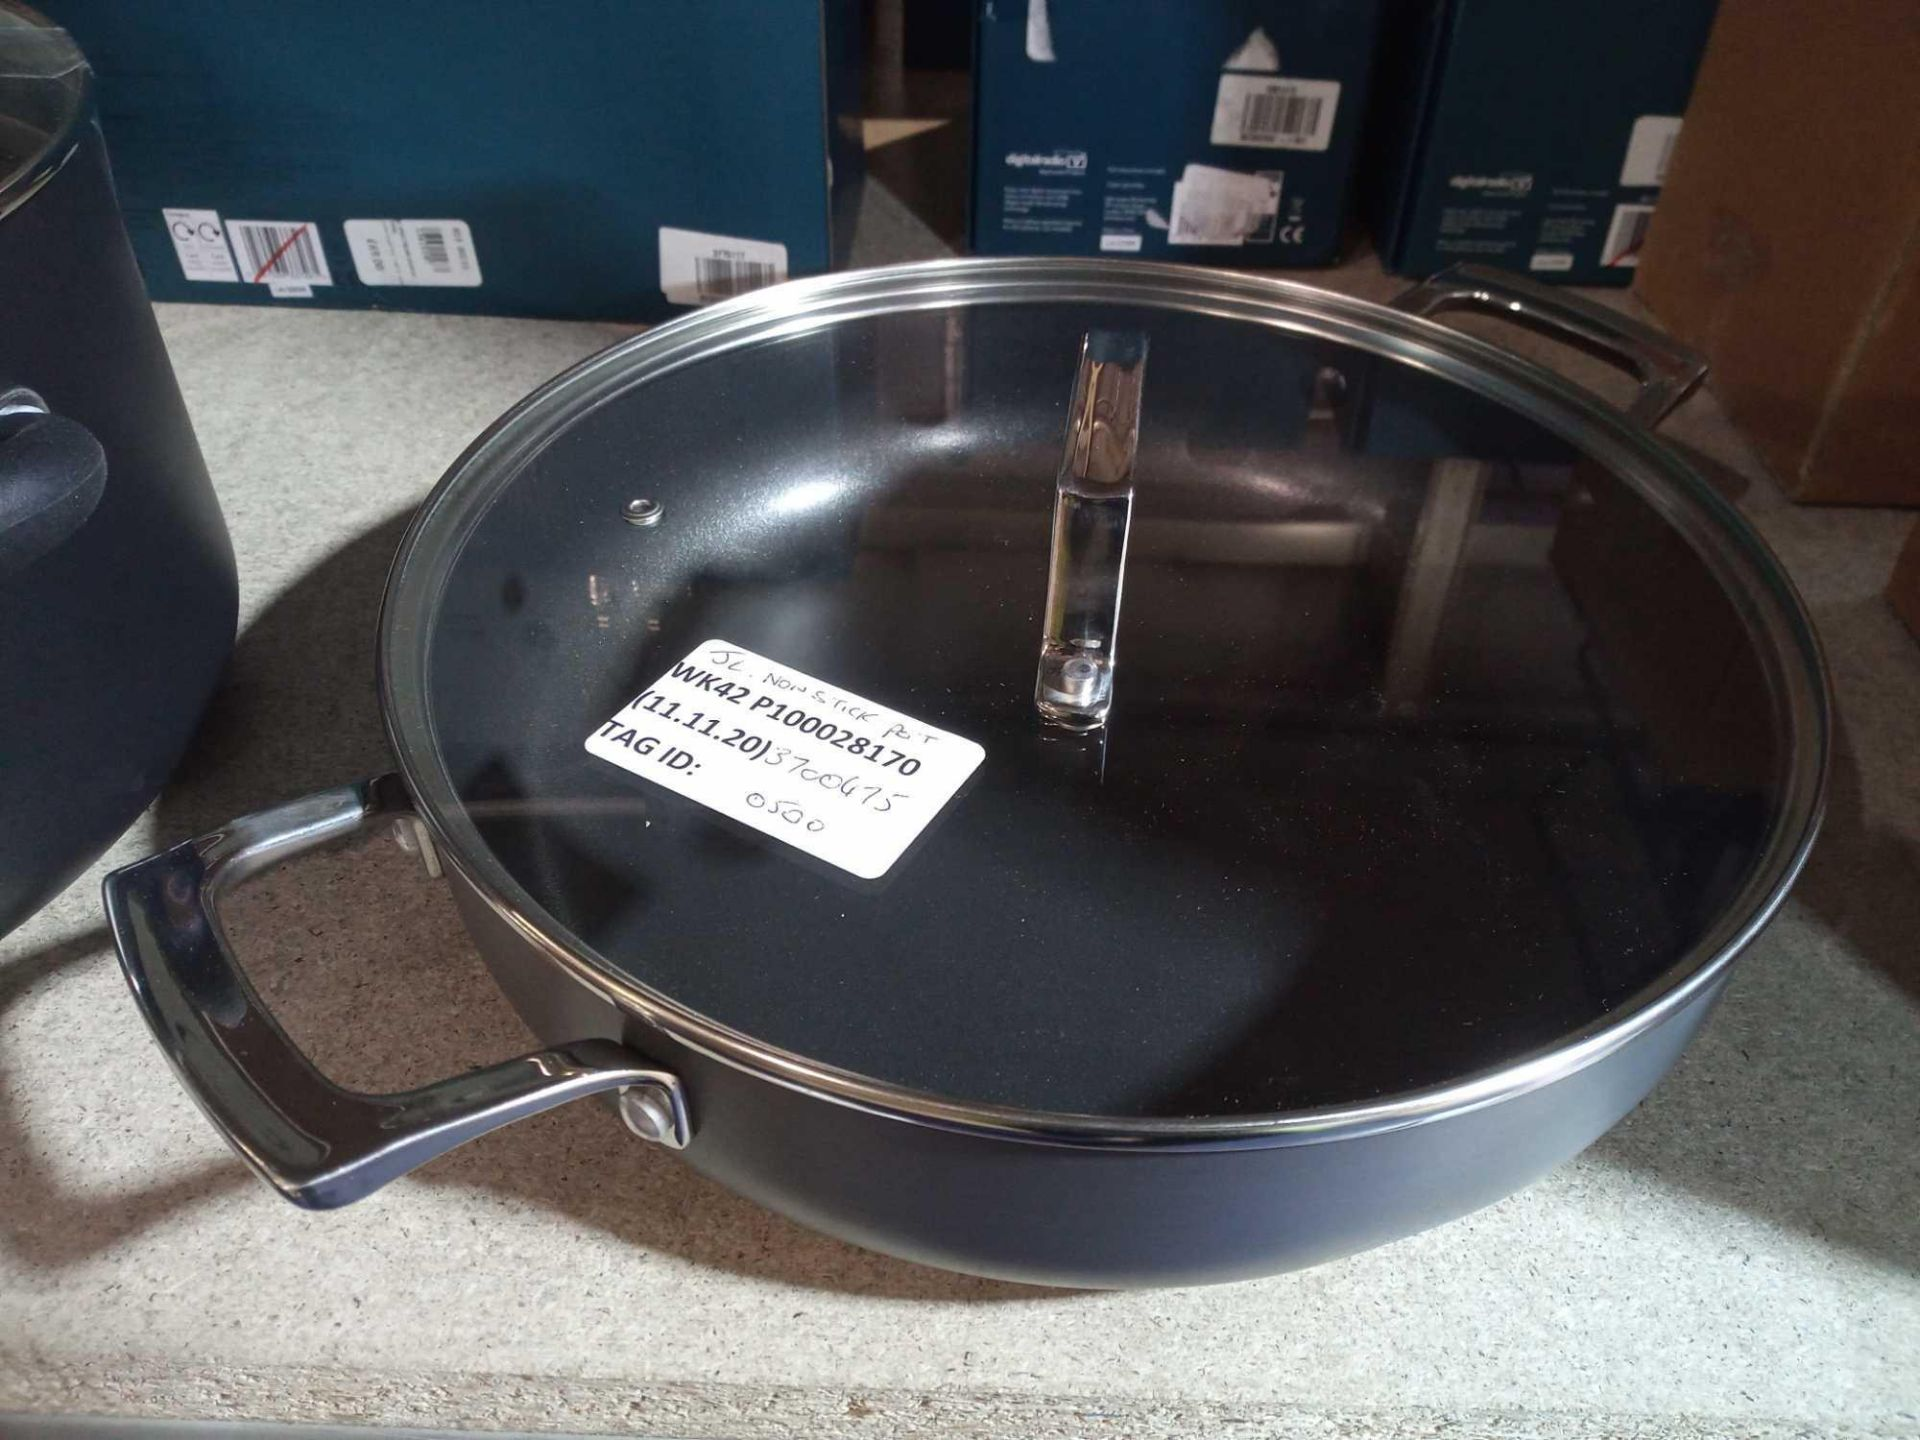 RRP £50 Each Unboxed Assorted John Lewis Kitchen Items To Include John Lewis Non-Stick Pots And Clas